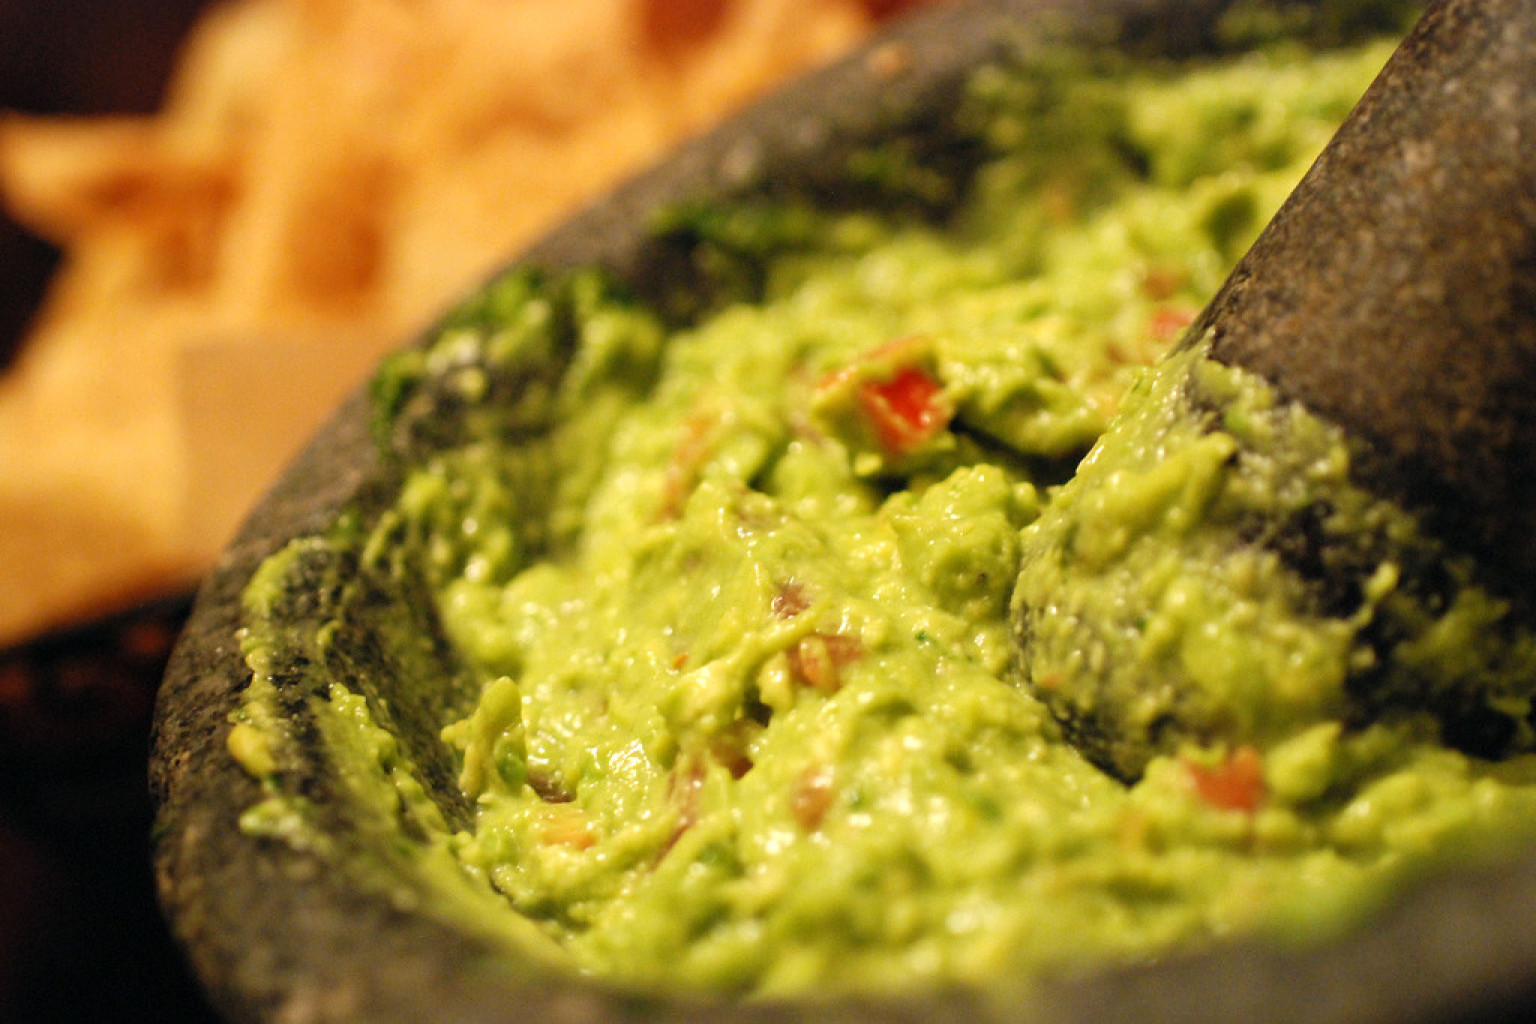 How To Make The Best Guacamole: Tips And Mistakes To Avoid | HuffPost